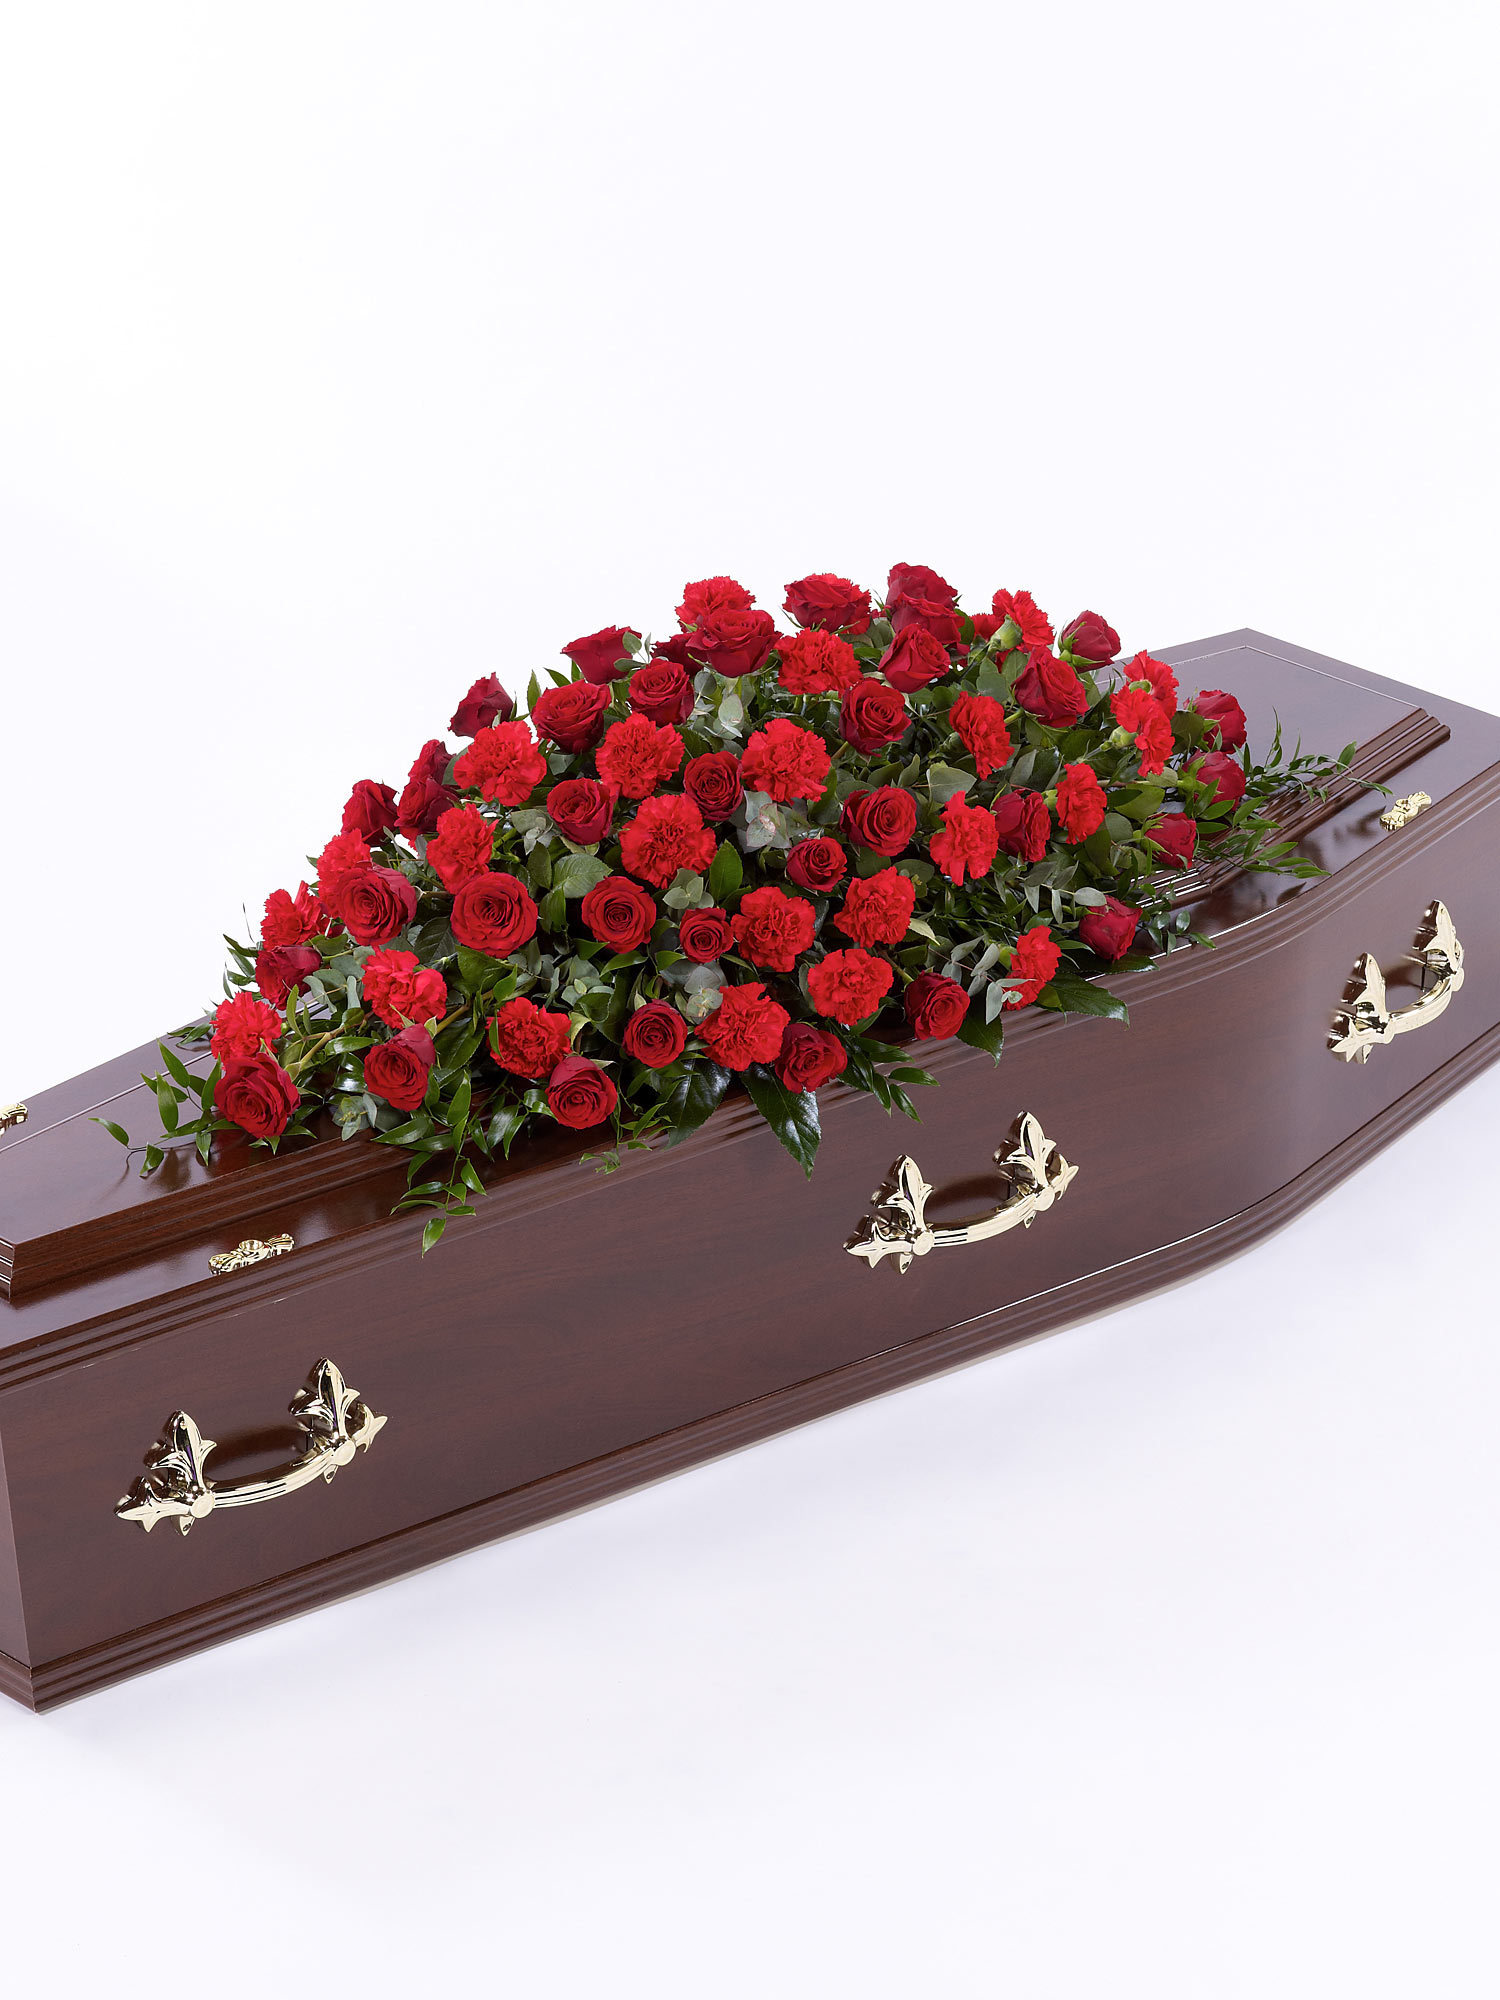 An arrangement of red flowers in a coffin spray